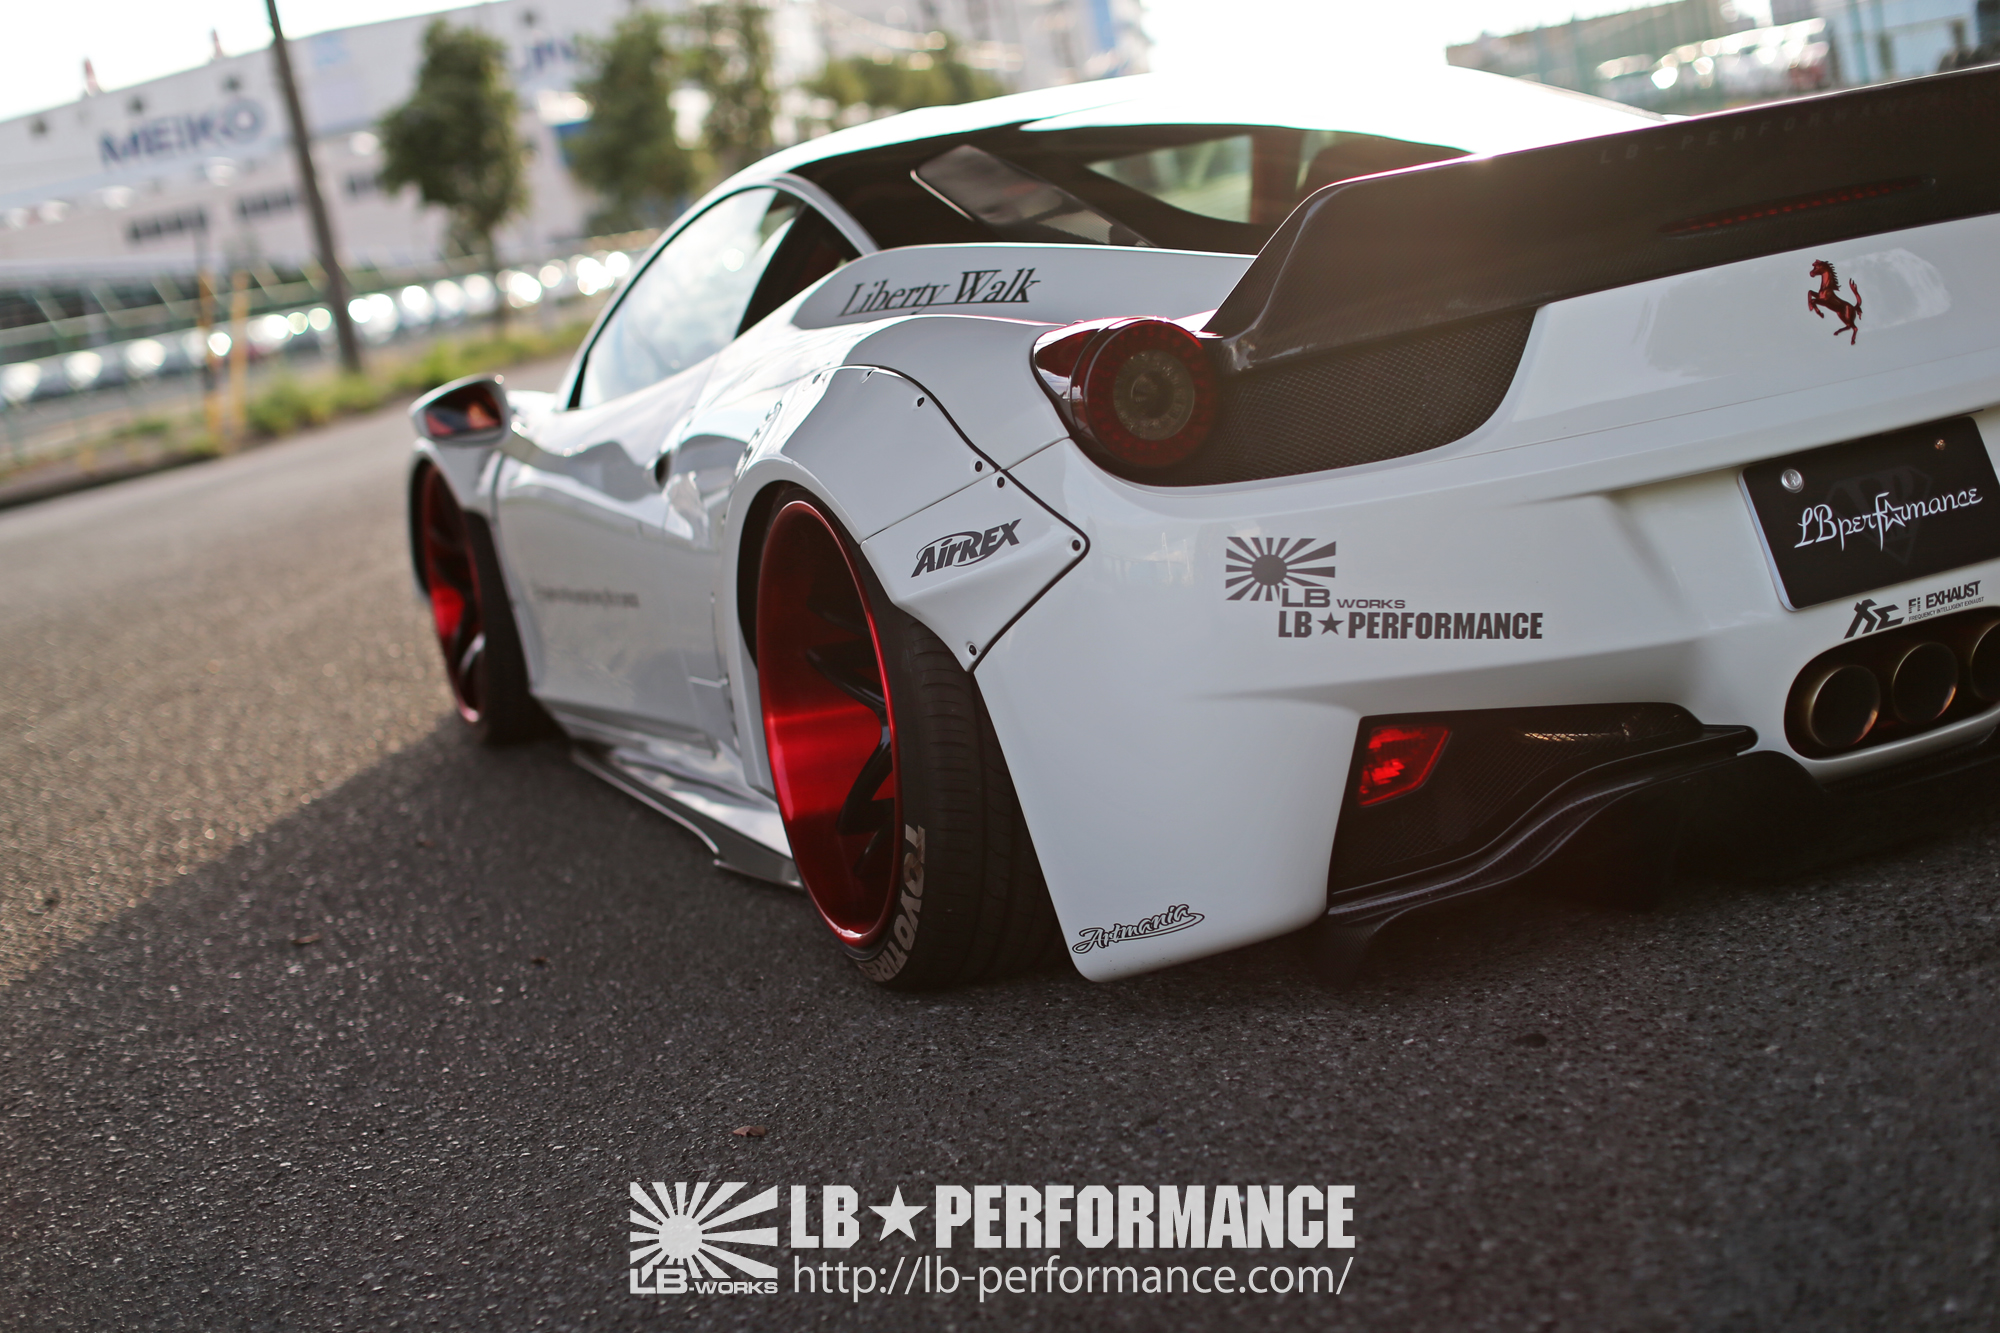 IMG_0973-1 LB-WORKS 458